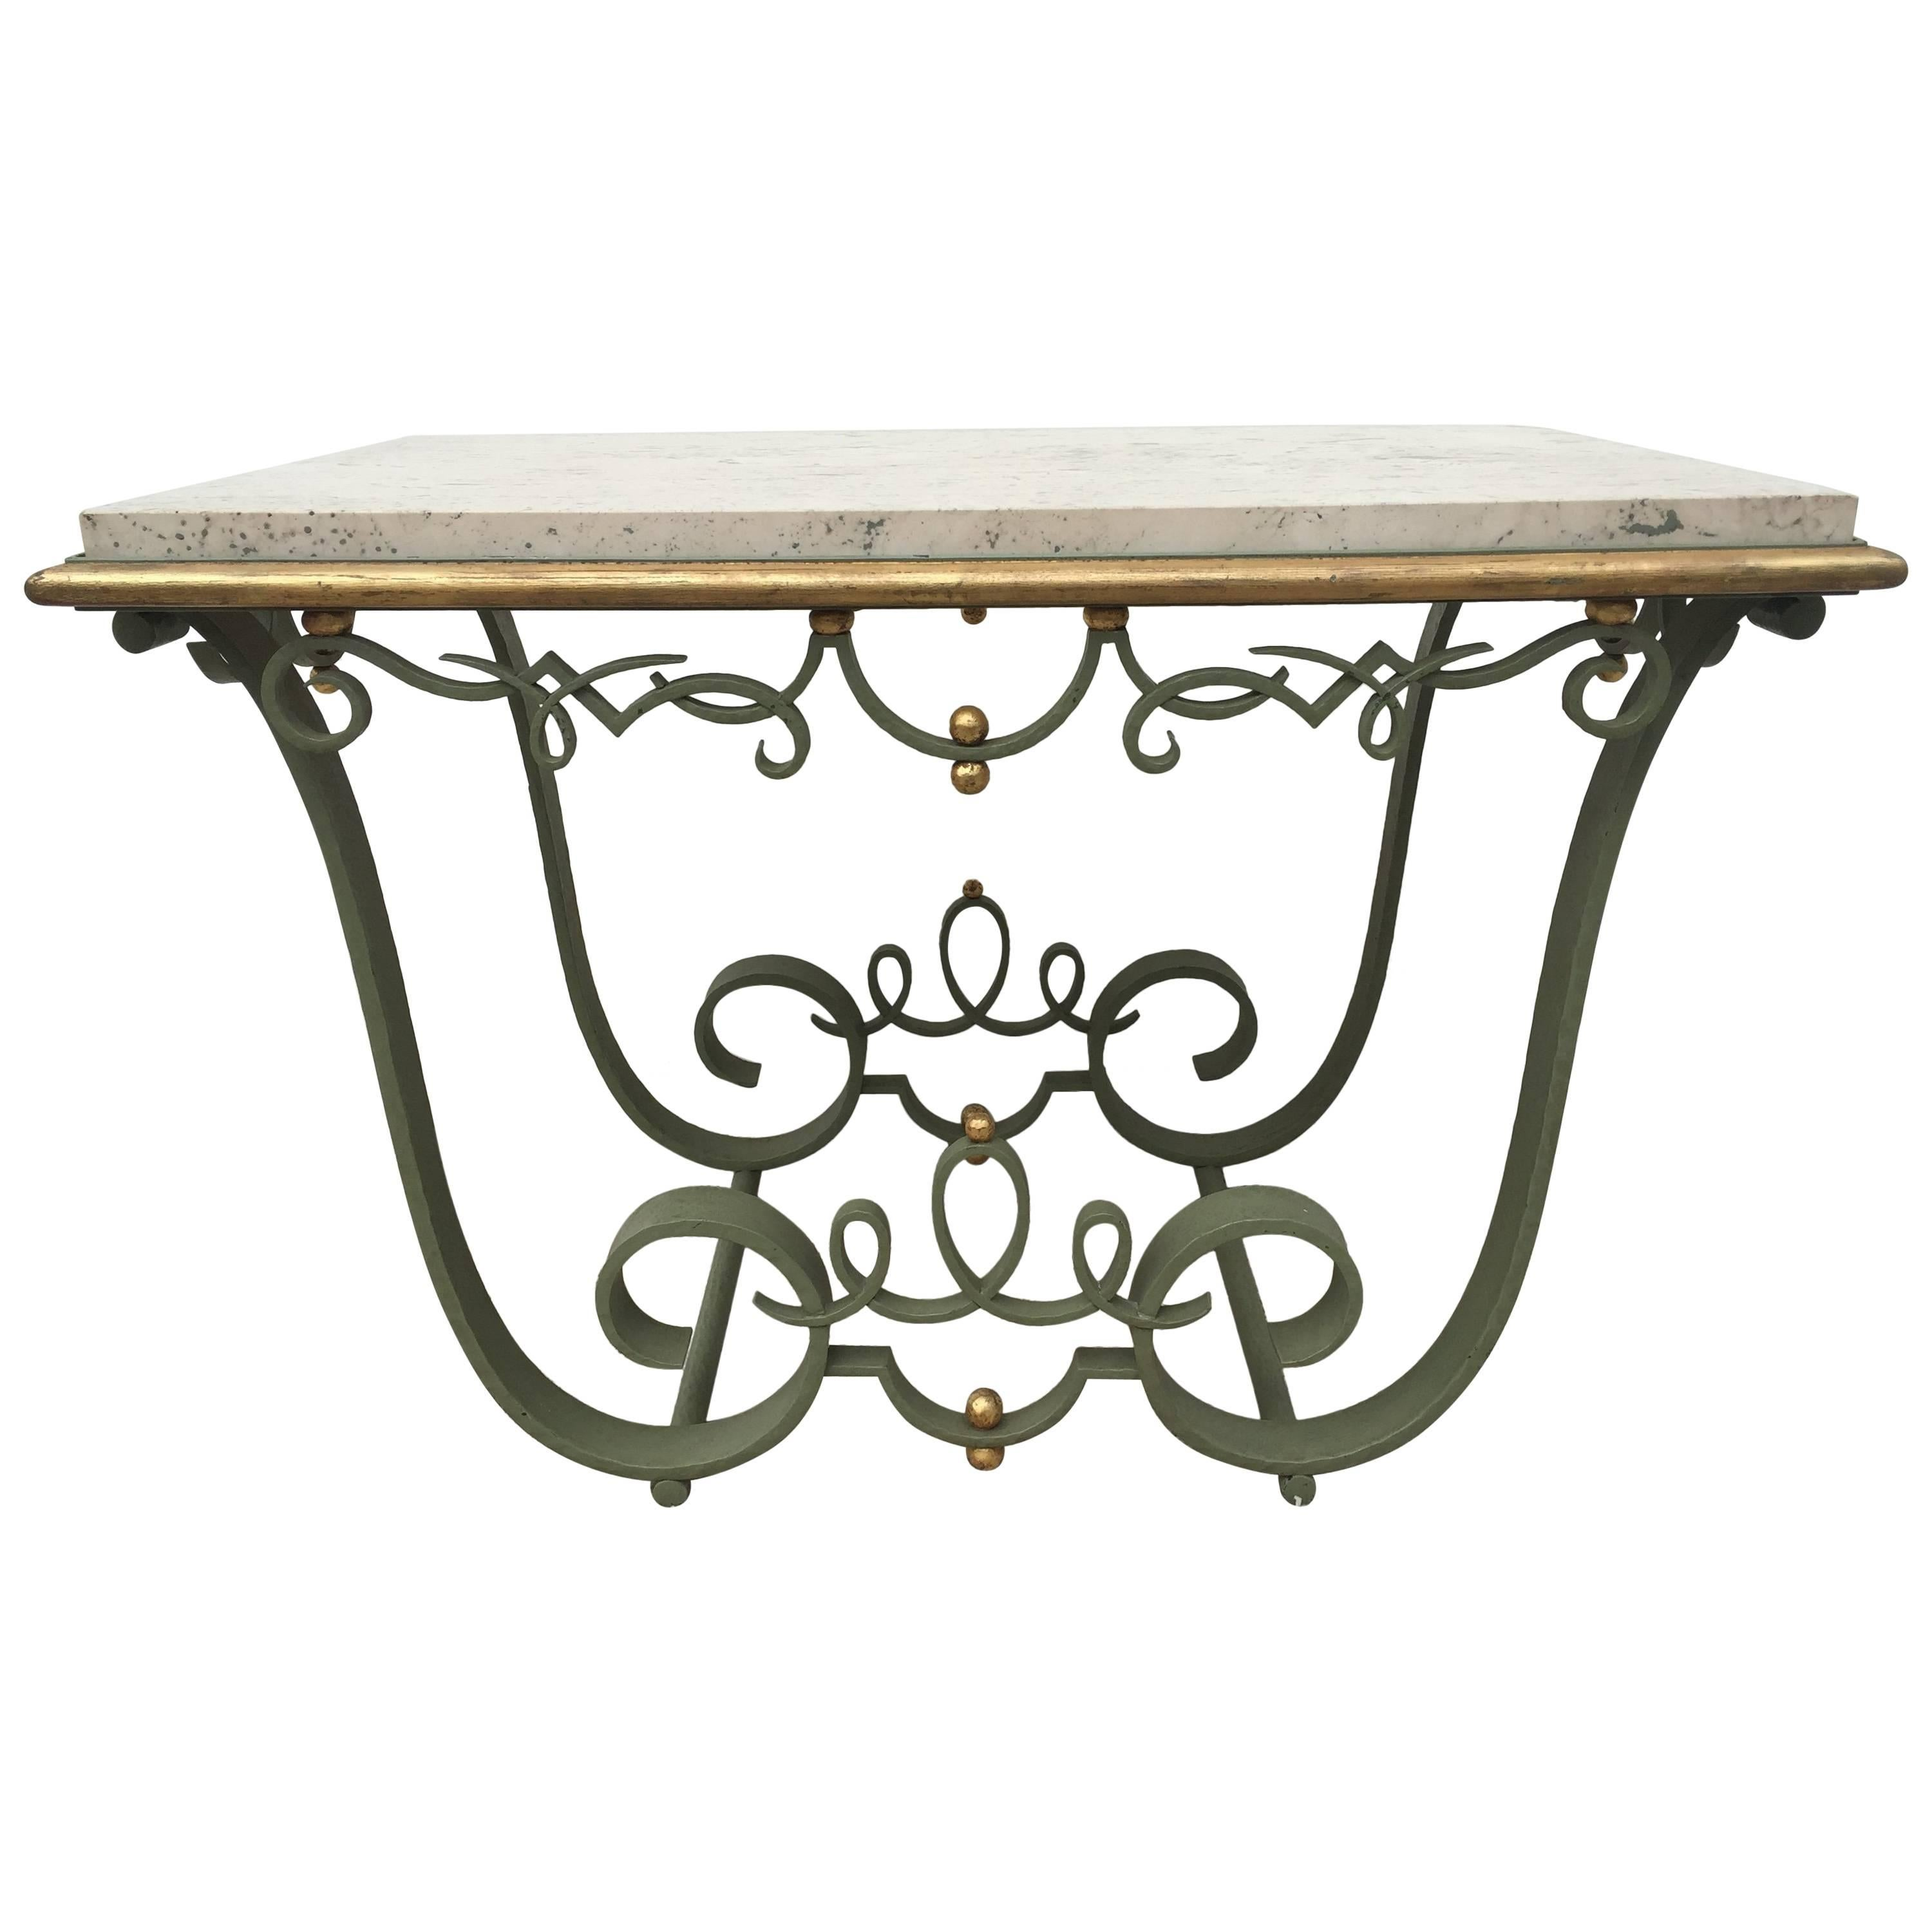 Raymond Subes Attributed Iron and Gilt Marble Table